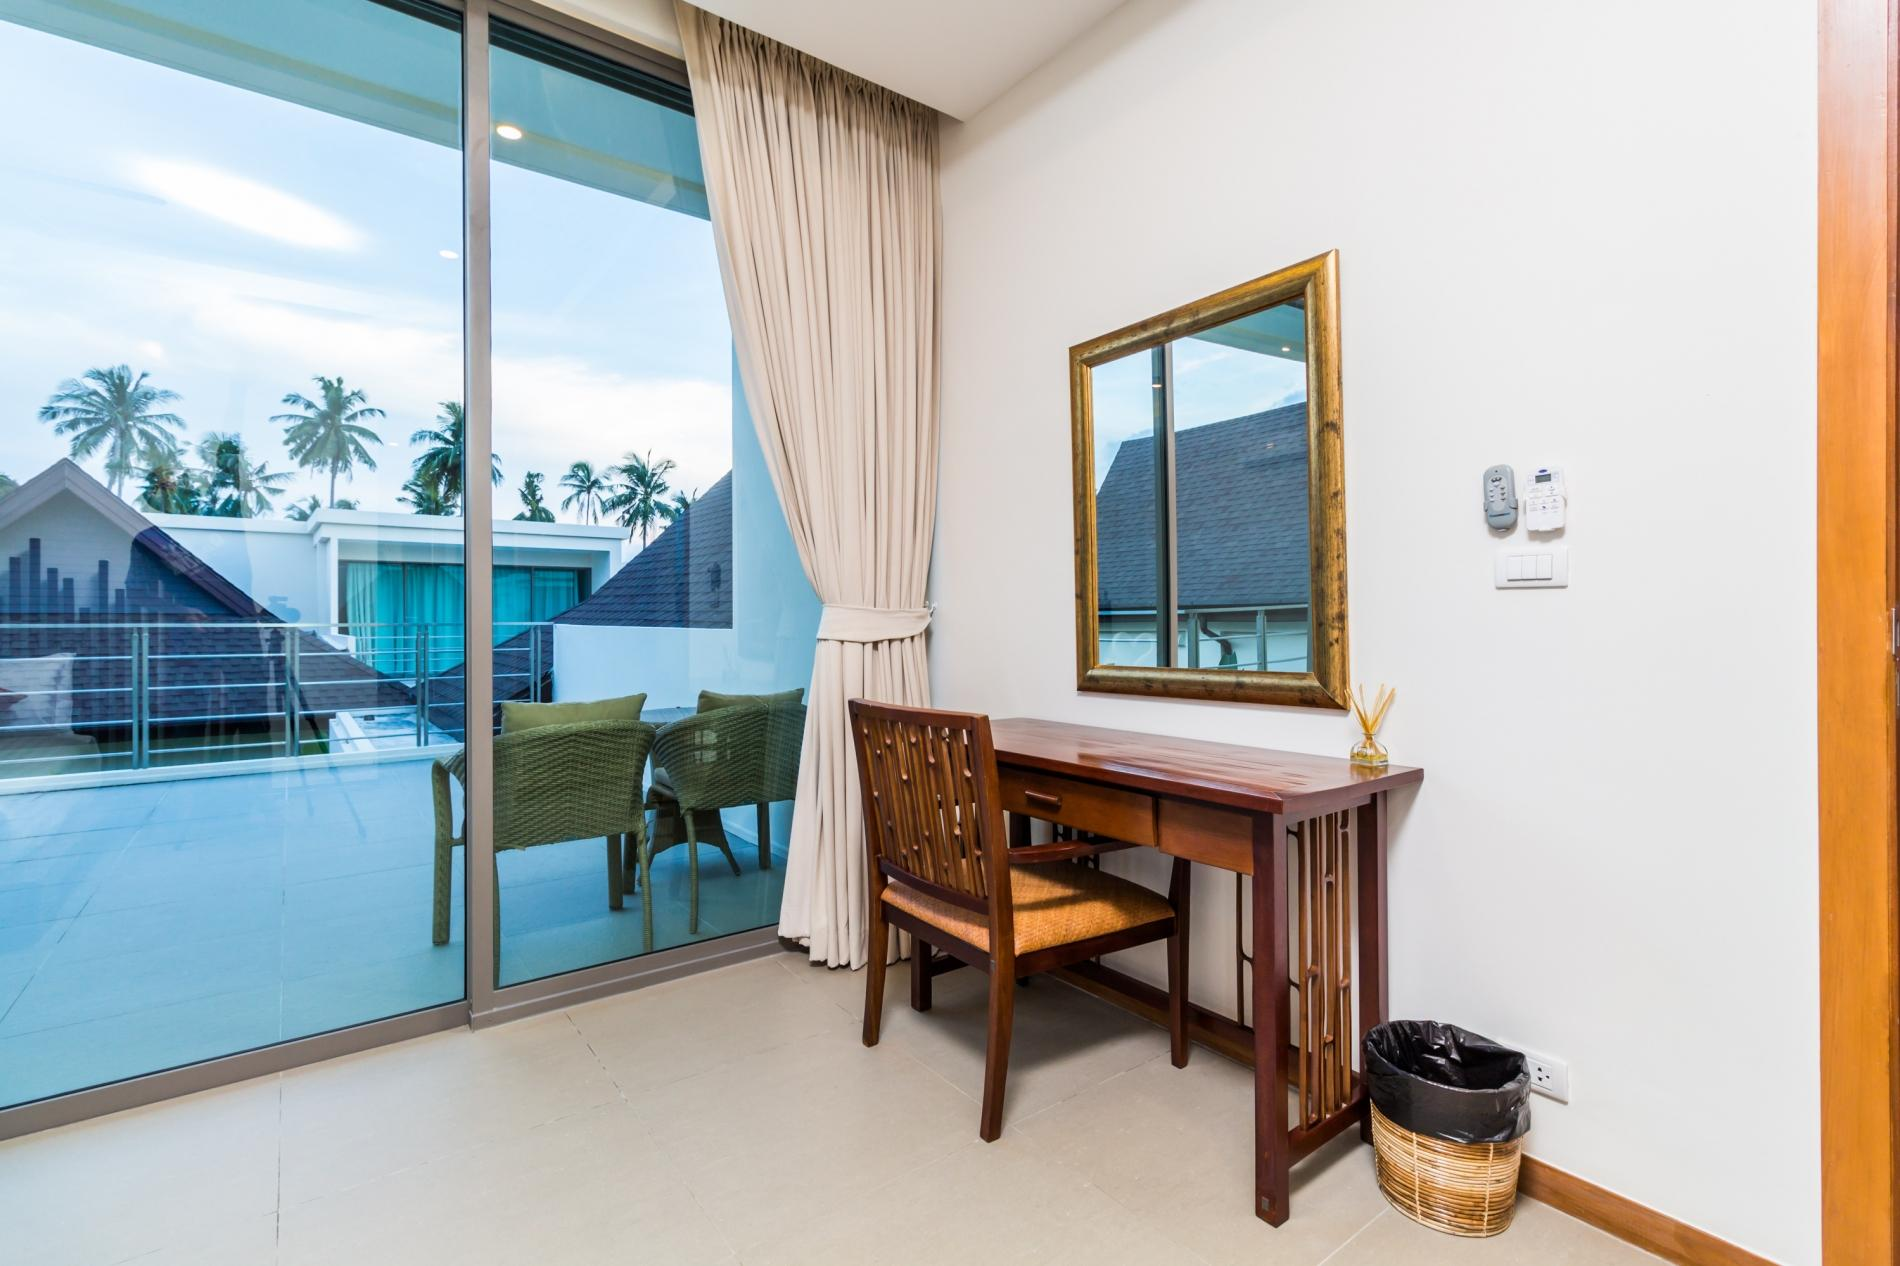 Apartment Ka Villa - Private pool villa near seafood market and beach photo 20320182